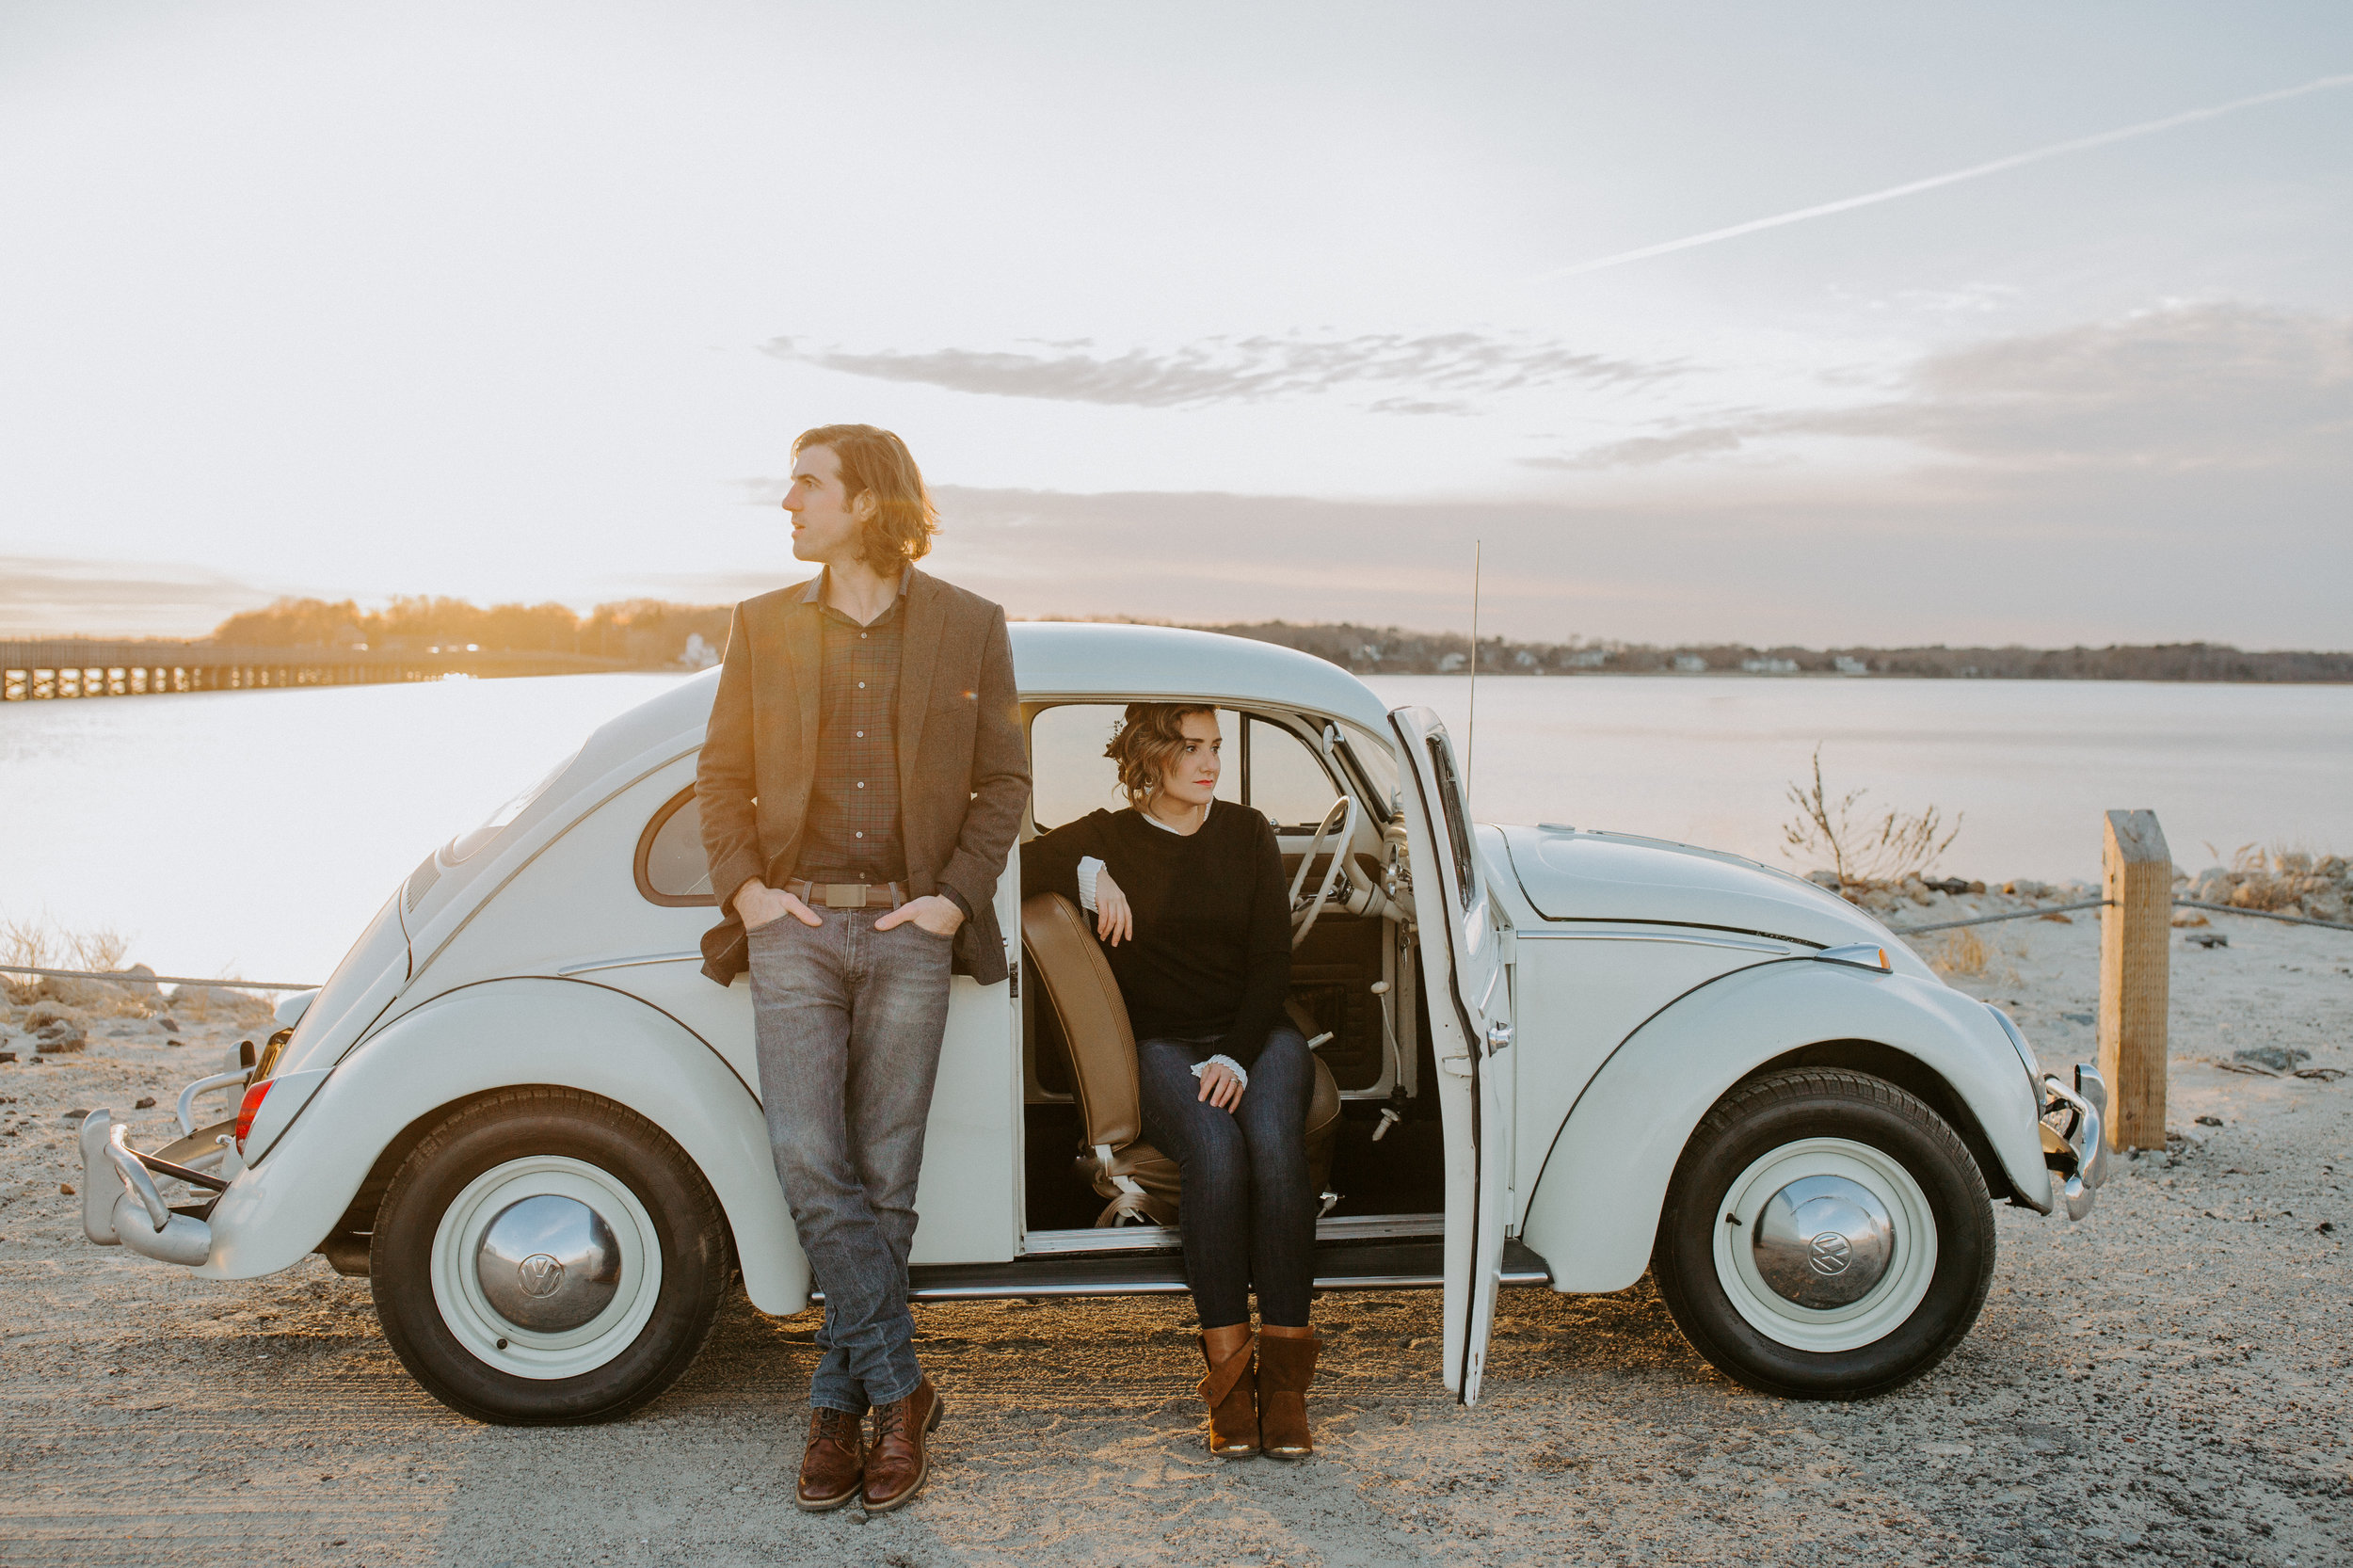 """""""It was an absolute joy to work with Sarah, she had us instantly comfortable and completely captured us...just being us. Our photos came out so beautiful and the return time for them was so speedy! I would 100% pick Sarah for all of our future photography needs!""""  -Kayla and Nick, December 2018"""